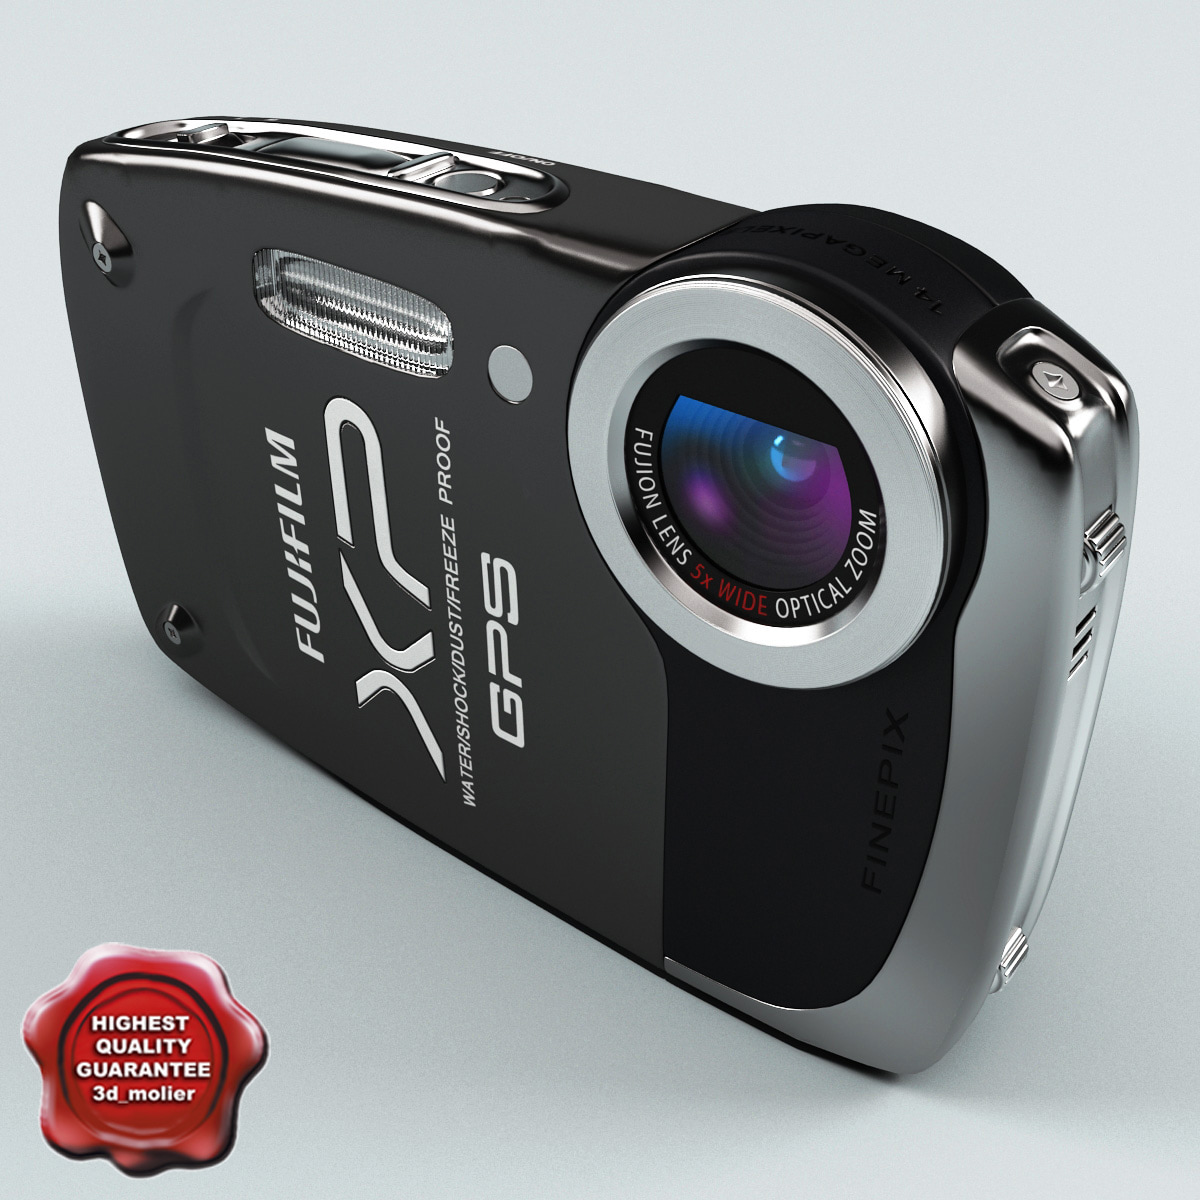 Fujifilm_FinePix_XP30_Black_00.jpg